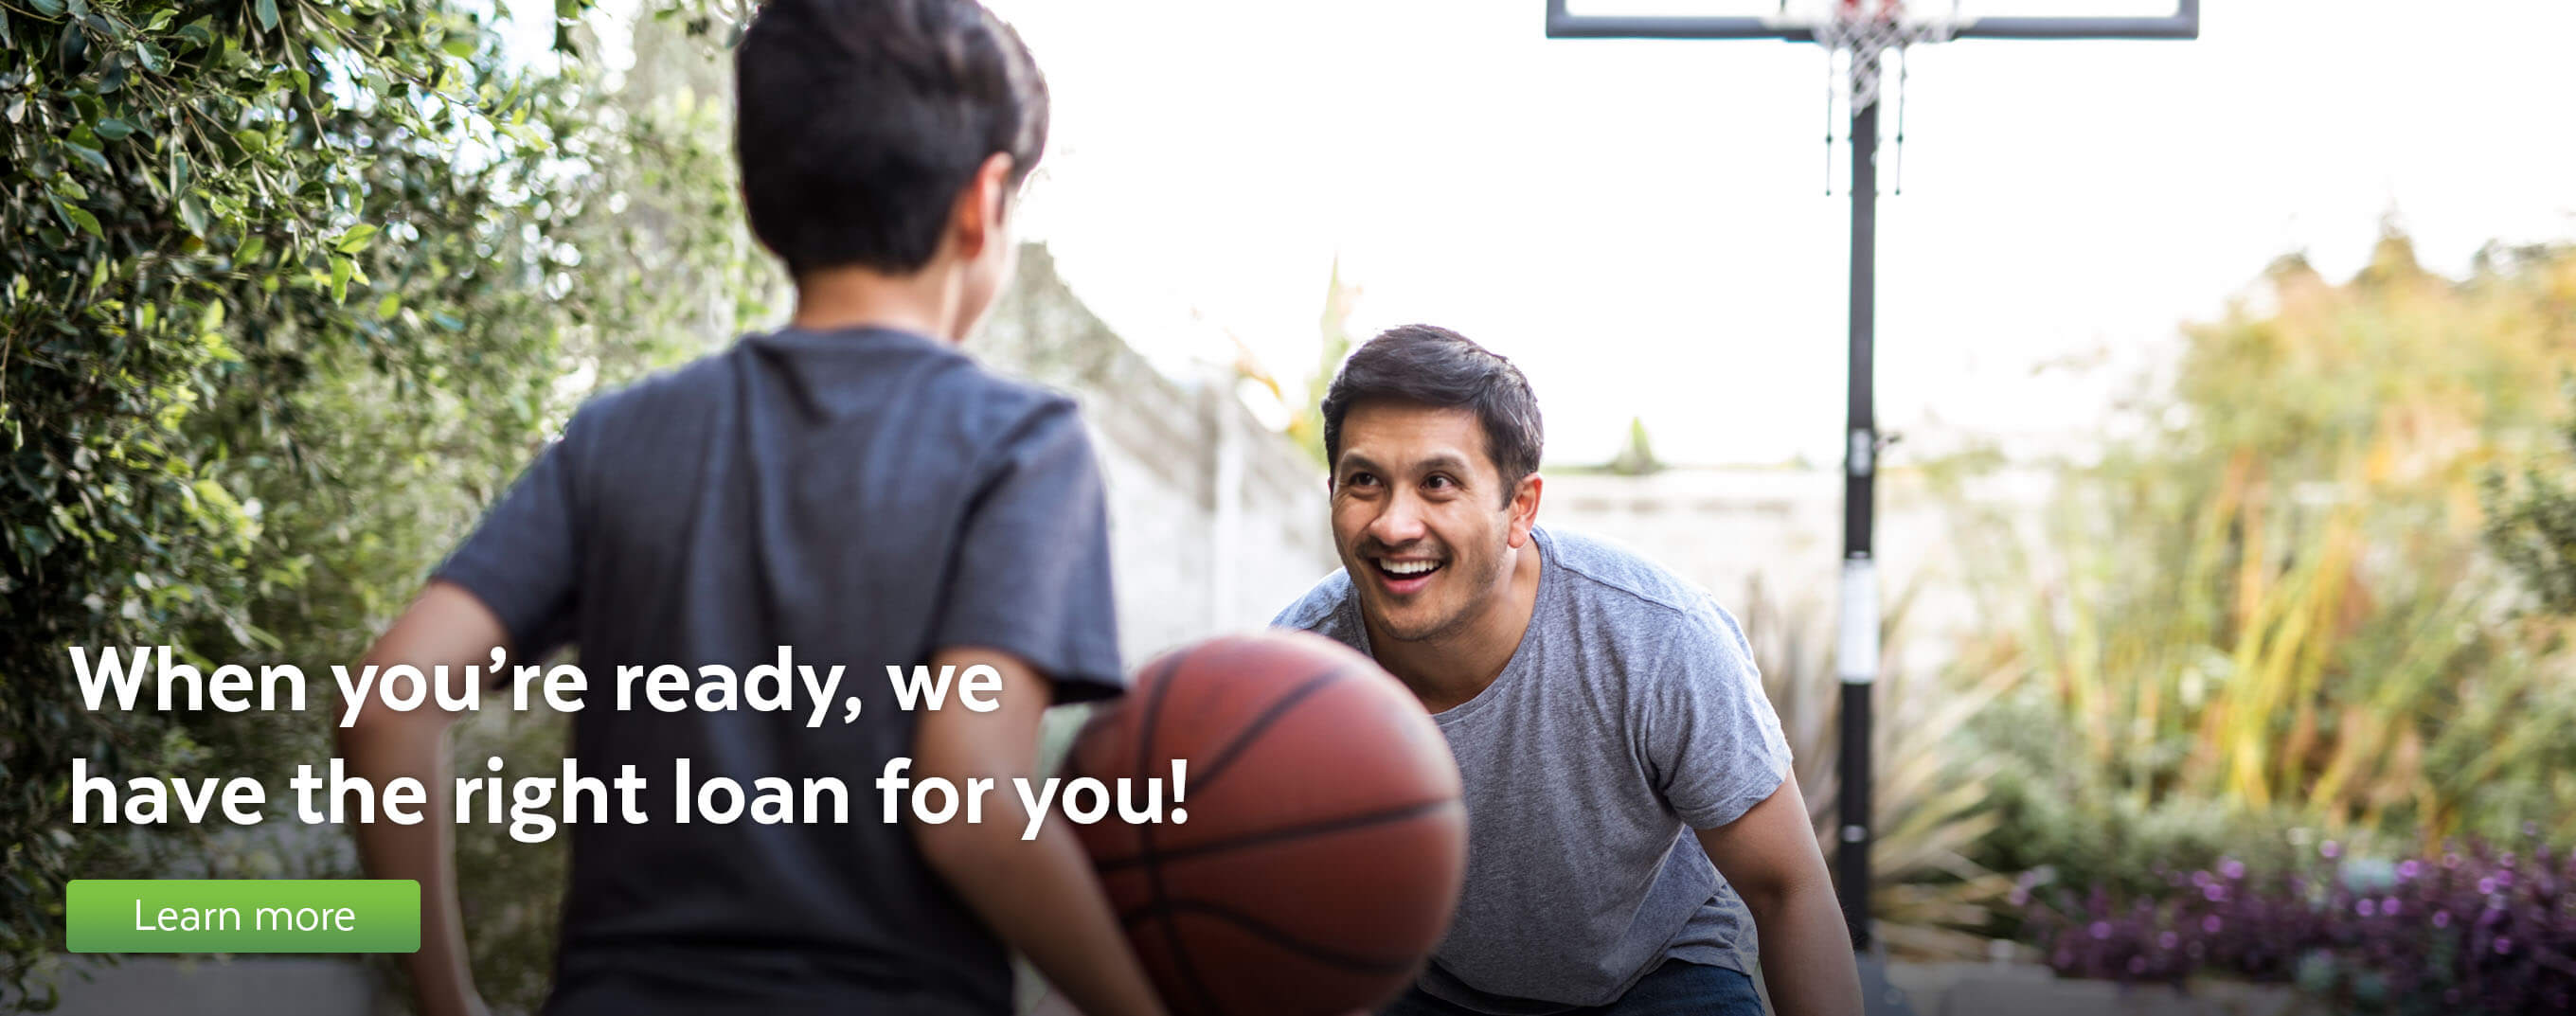 When you're ready, we have the right loan for you!